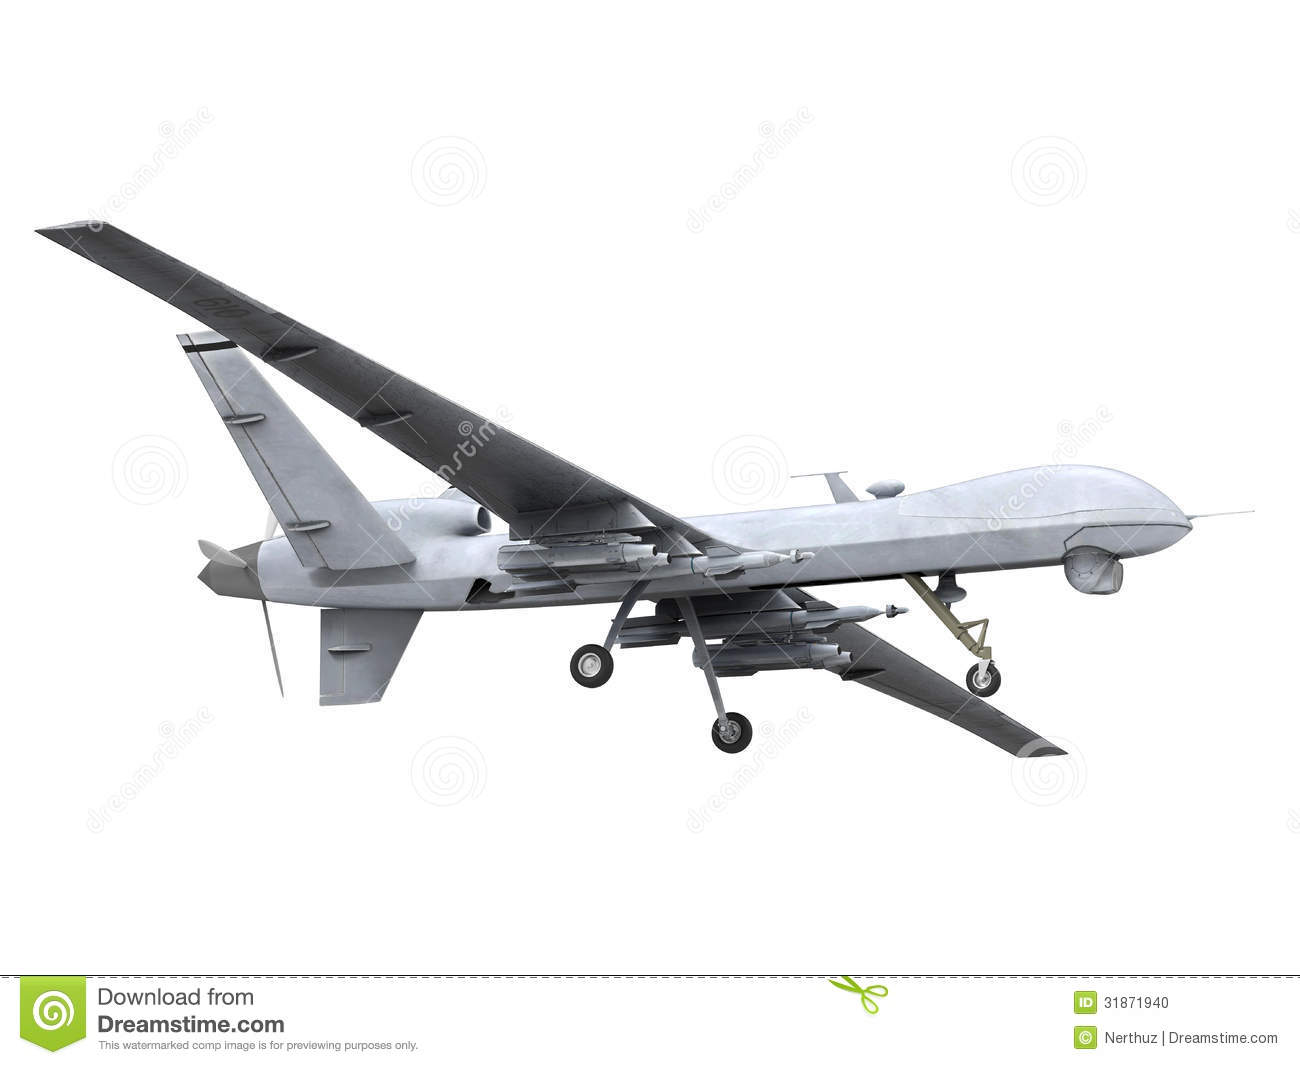 drone usage in war time tactics Drones are quickly becoming one of the us military's primary weapons as   congress has exercised little or no oversight related to the tactical or strategic  use of drones  it is time to pause and evaluate the potential outcomes of this  policy.